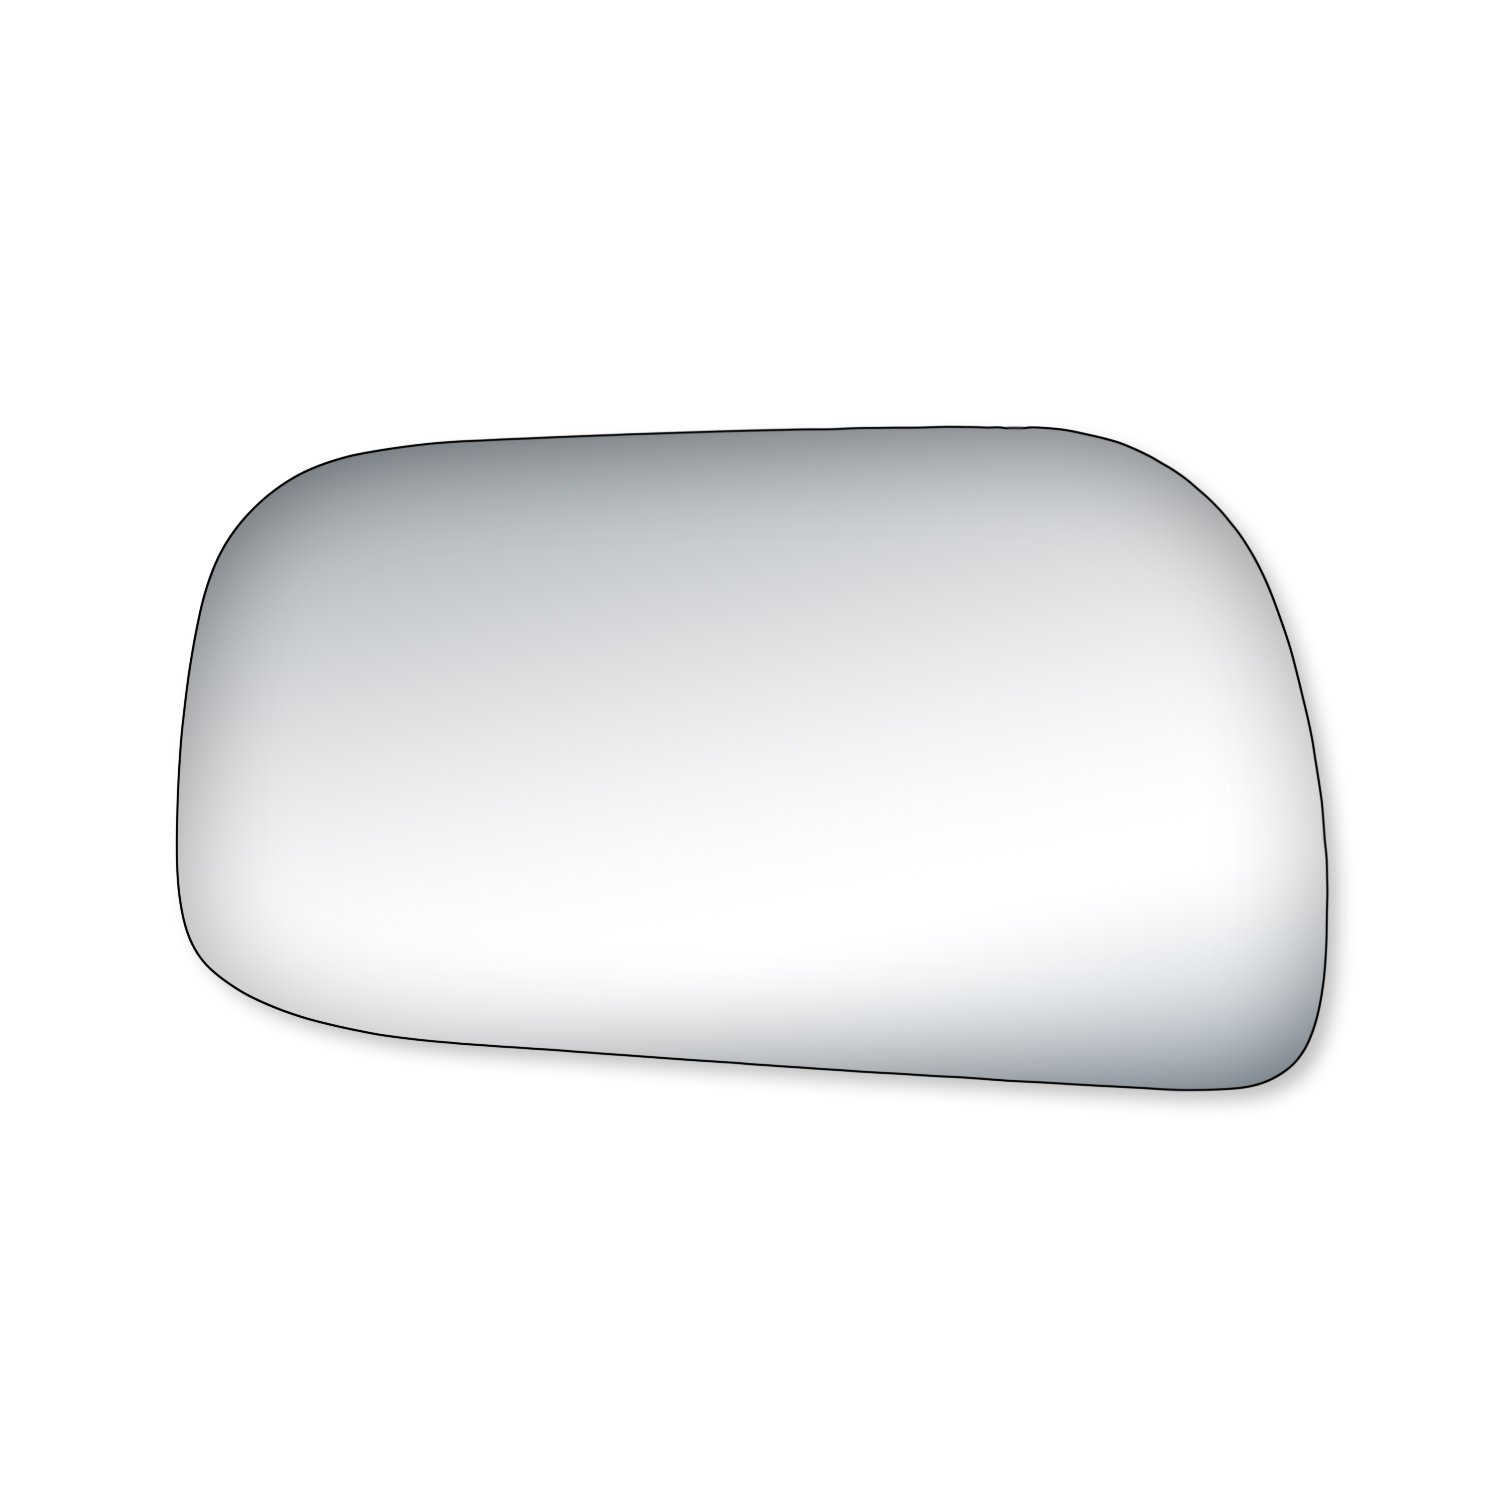 51wlvR8Fg3L._SL1500_ Cool toyota Camry 2008 Driver Side Mirror Cars Trend